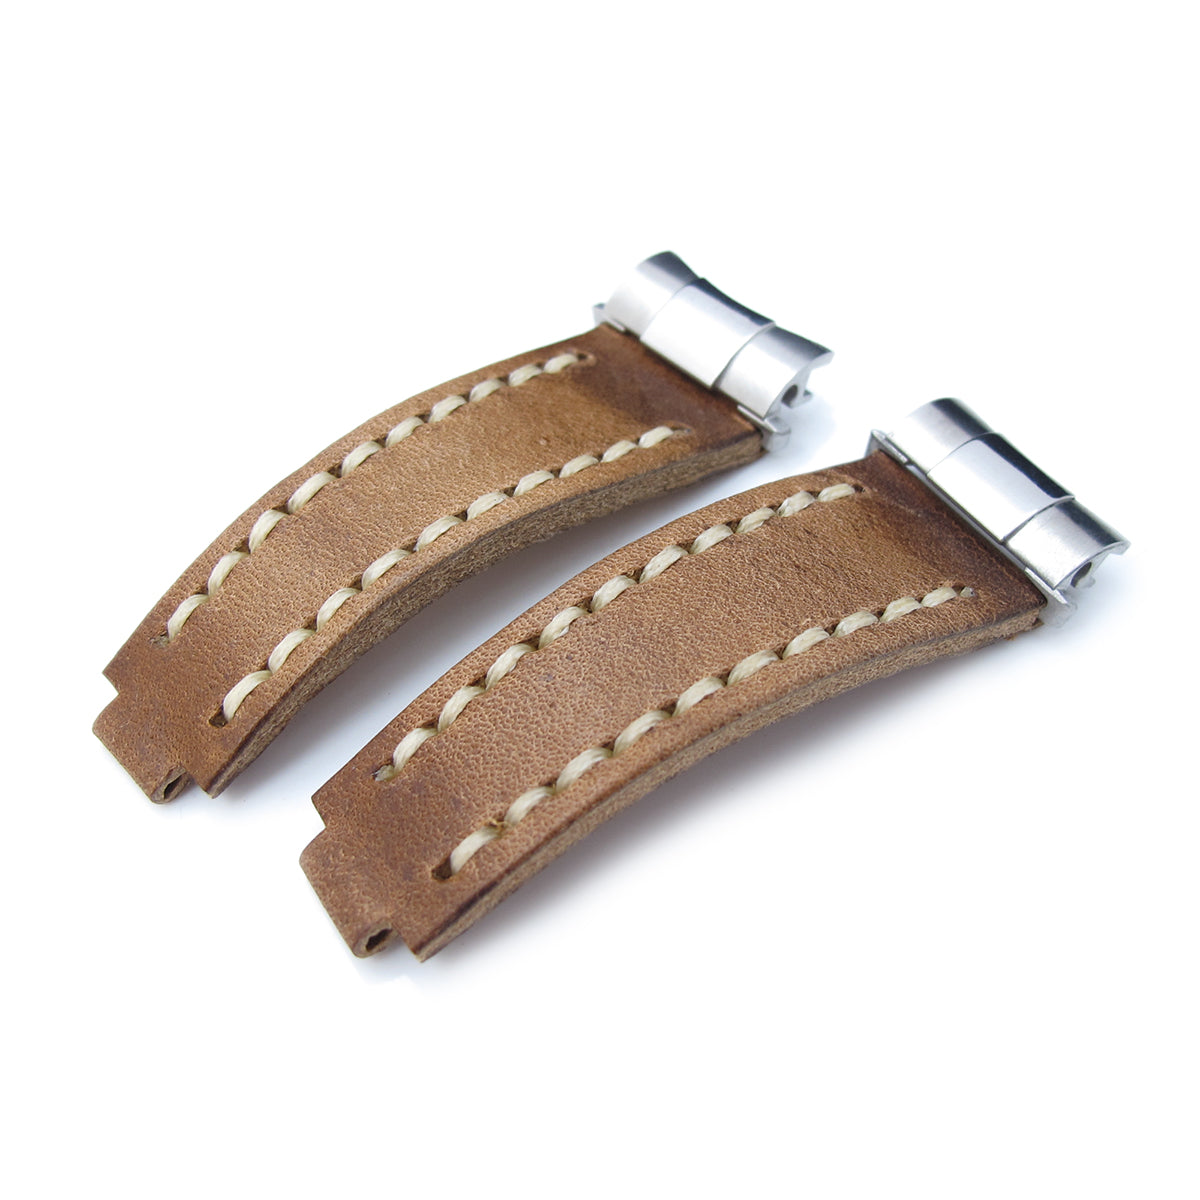 Revenge End Link Replacement Watch Strap Tailor-made for RX Matte Brown Pull Up Leather Beige St. Strapcode Watch Bands